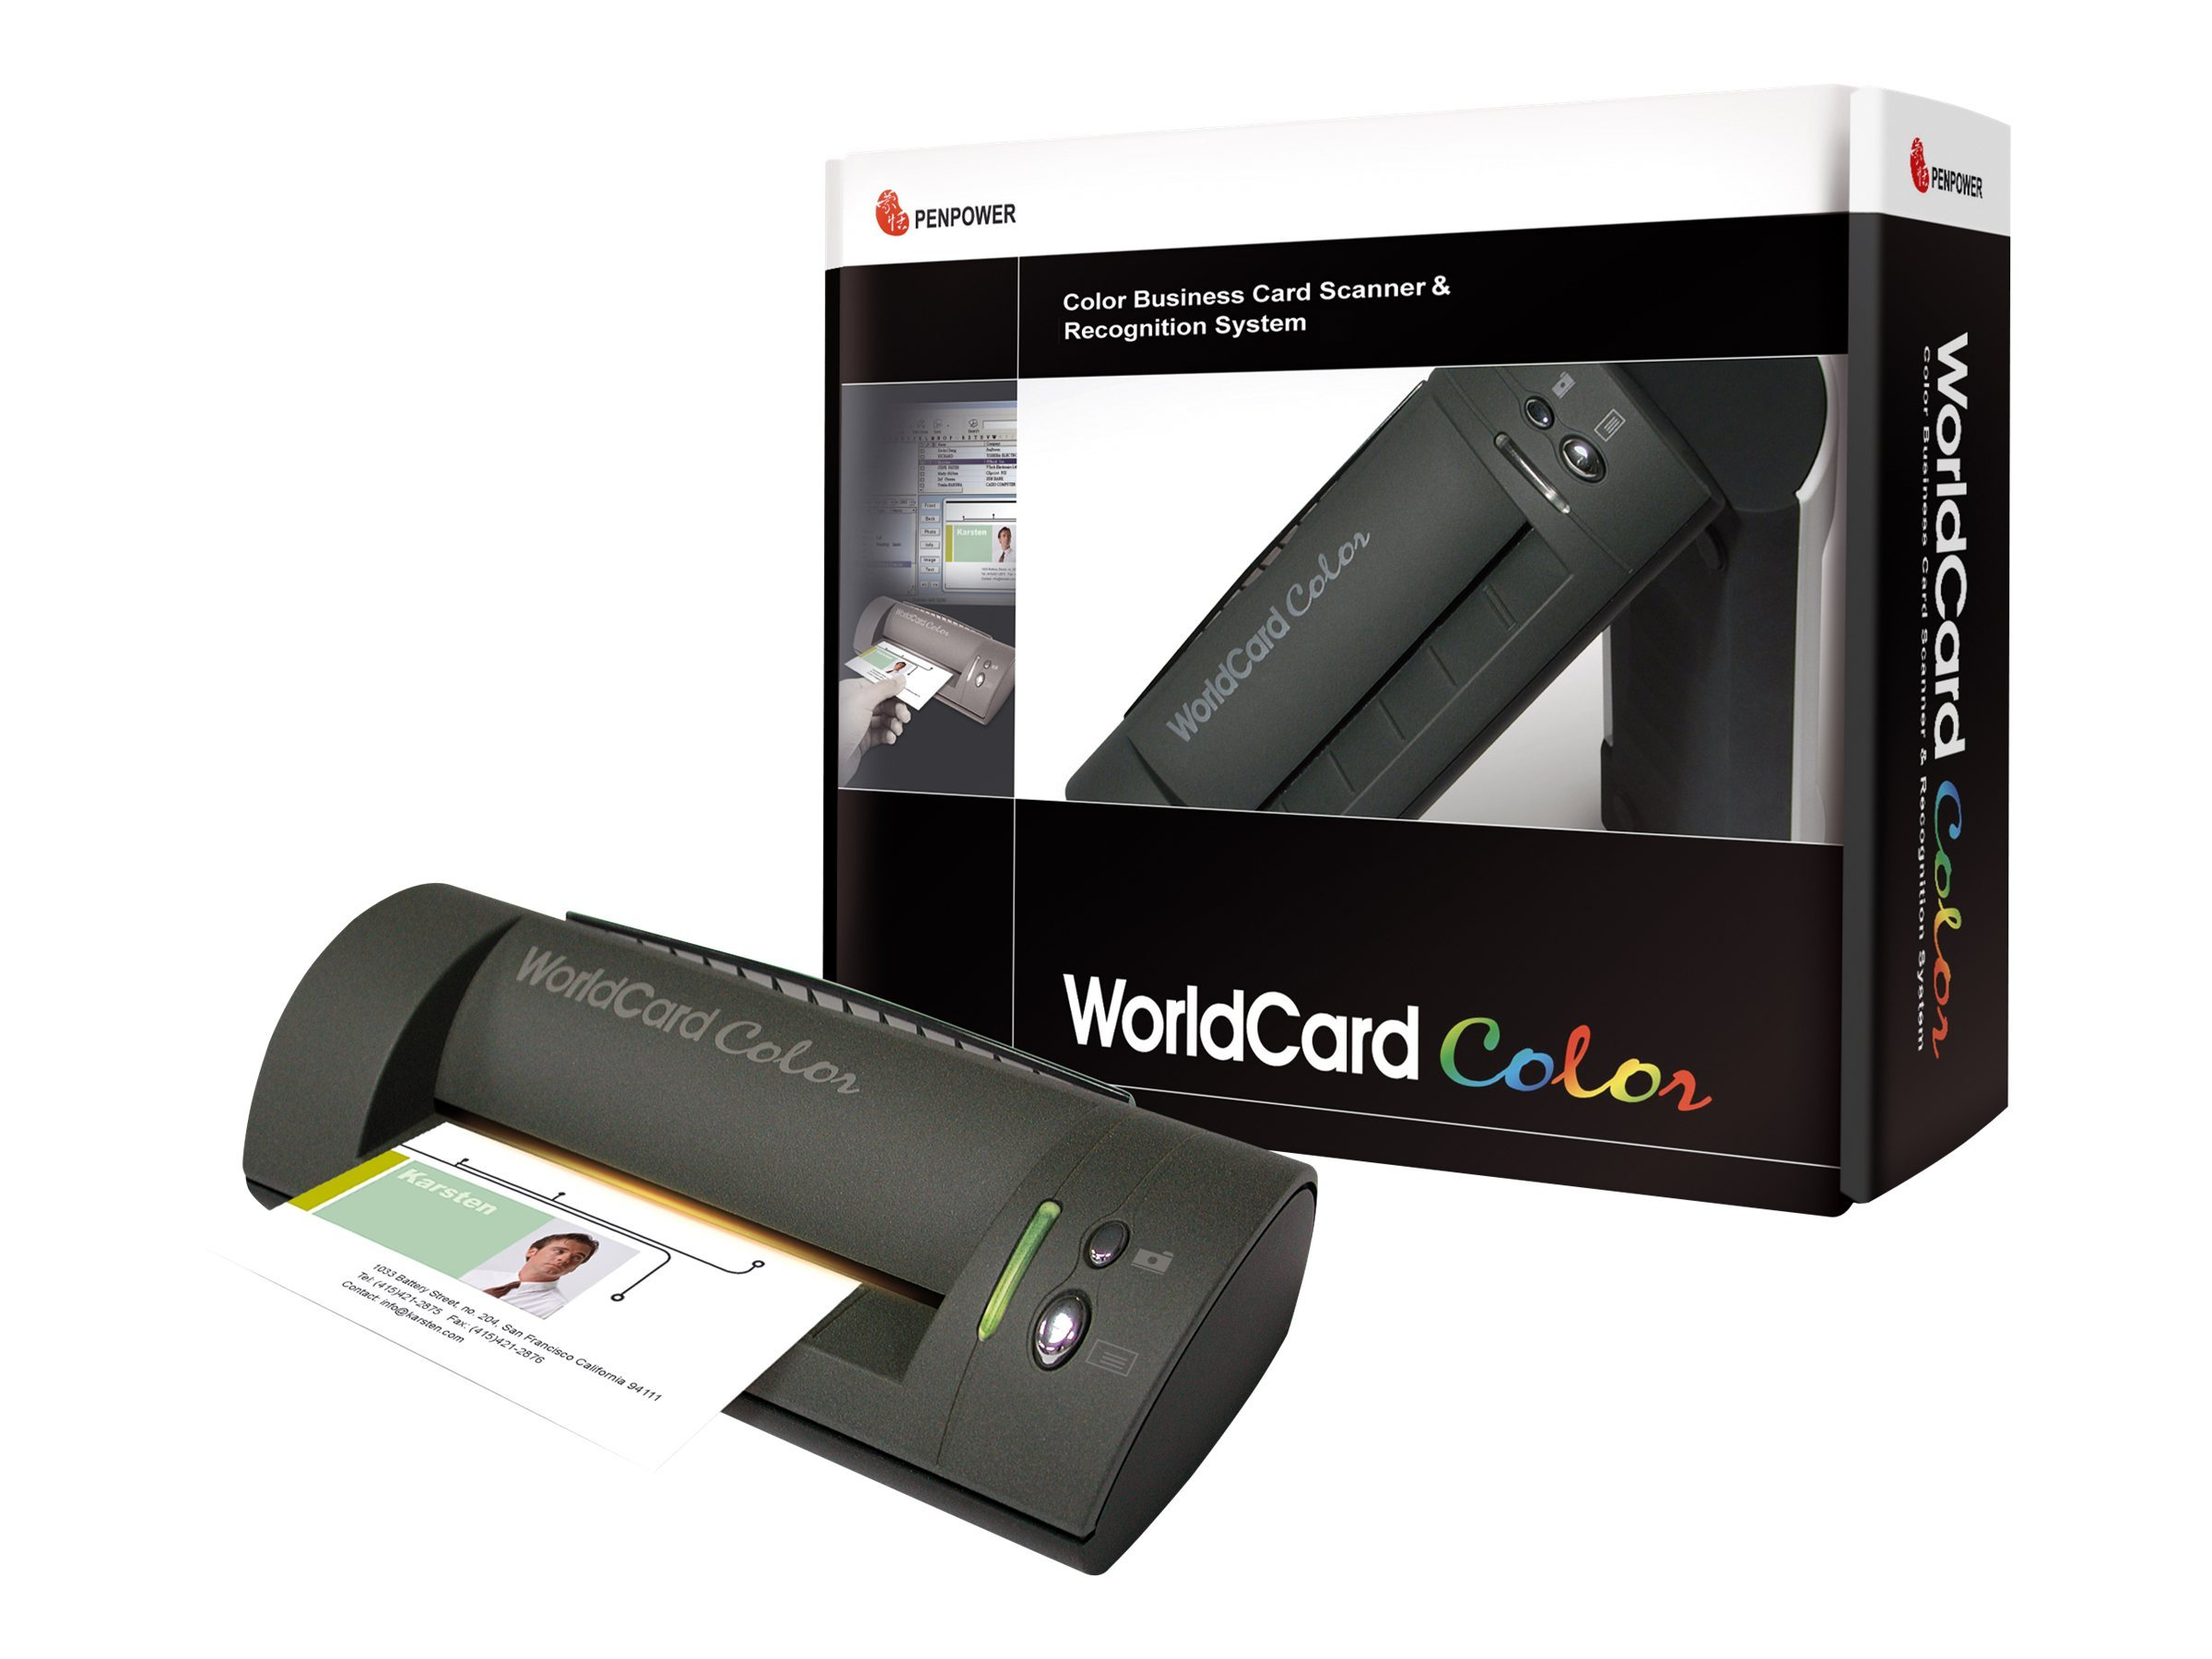 Alestron PenPower WorldCard Color Scanner V 6.2, SWOCR0012, 6413501, Scanners